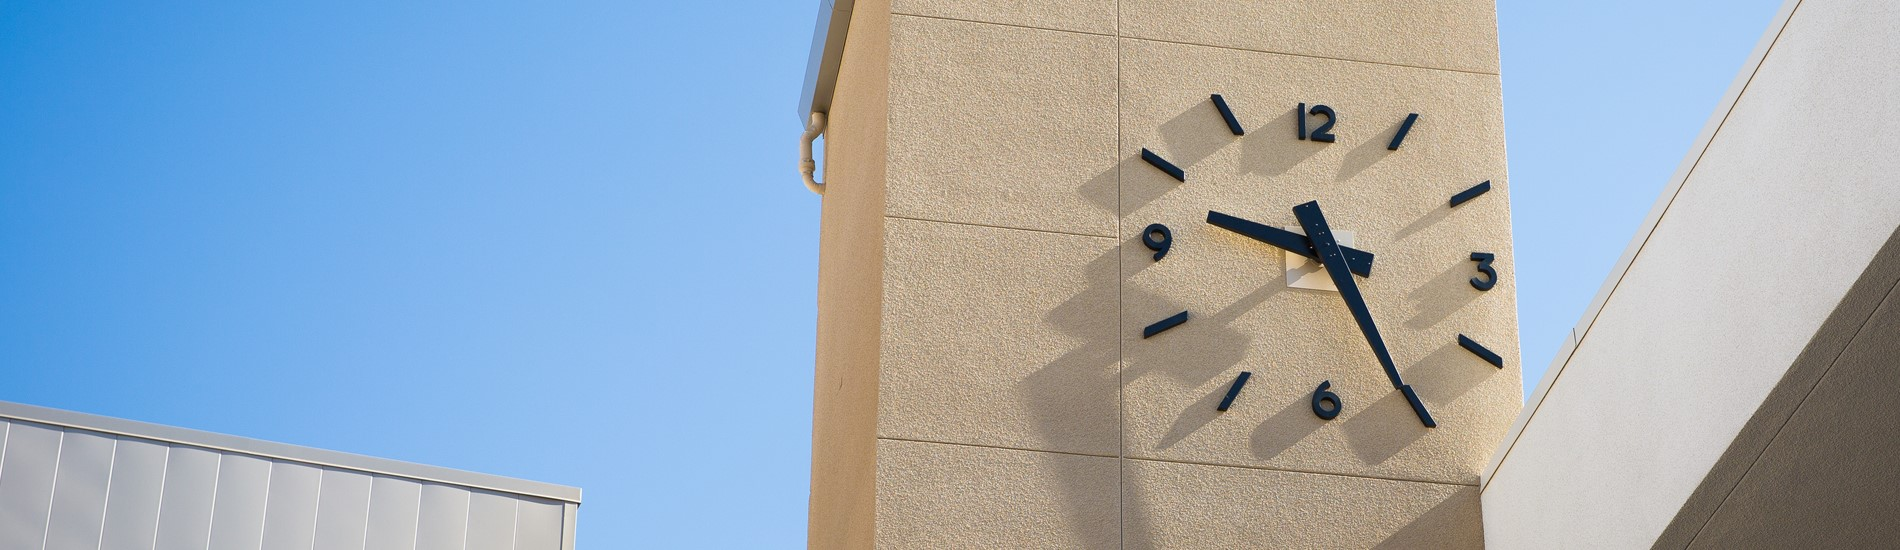 PHS clock tower